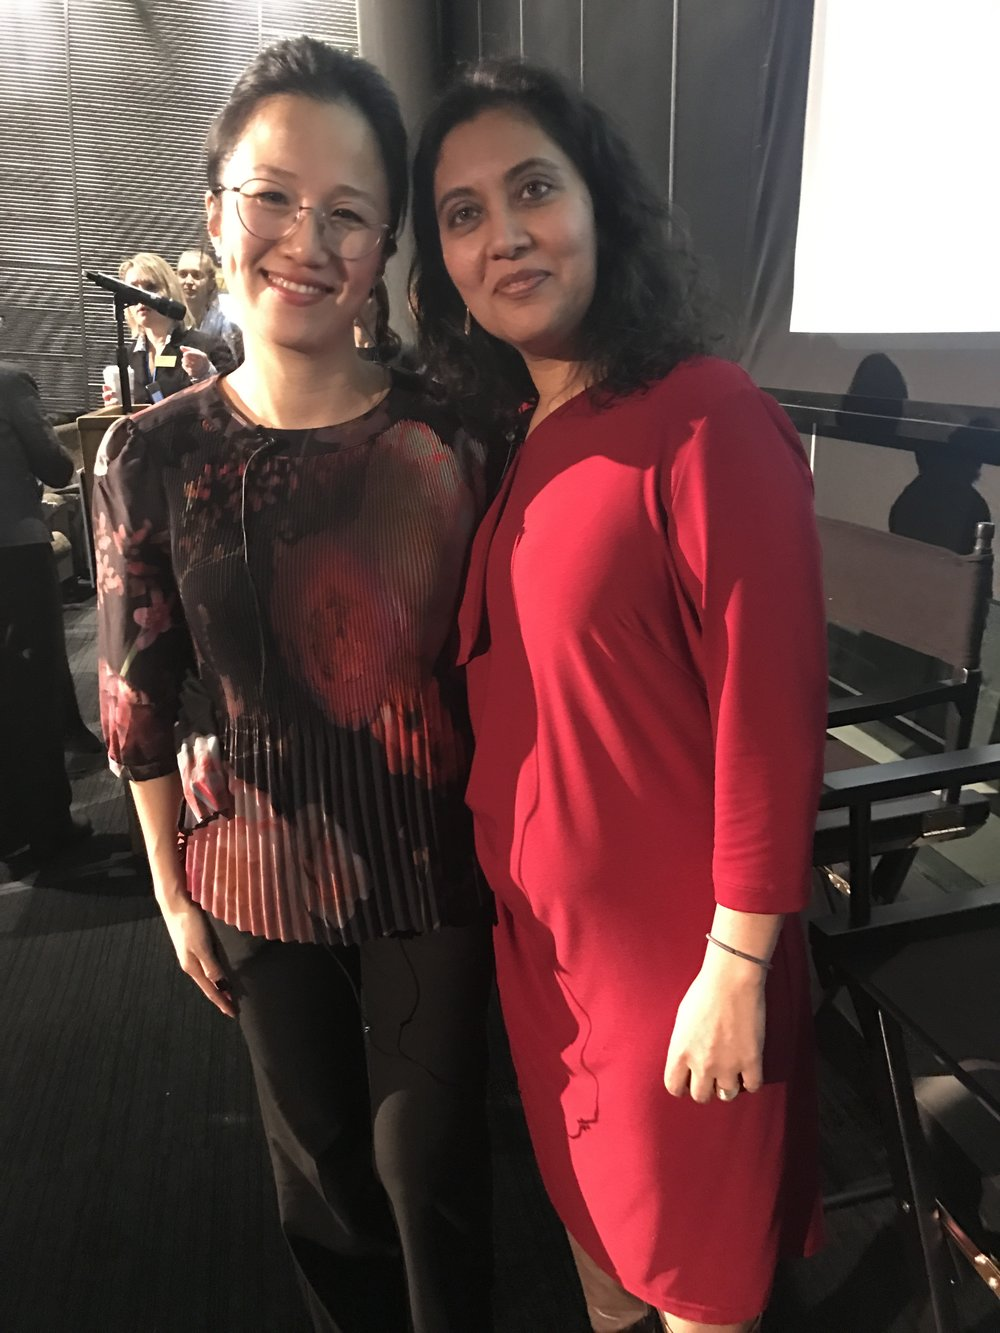 Anupama Rao and Ana Paulina Lee at the conference